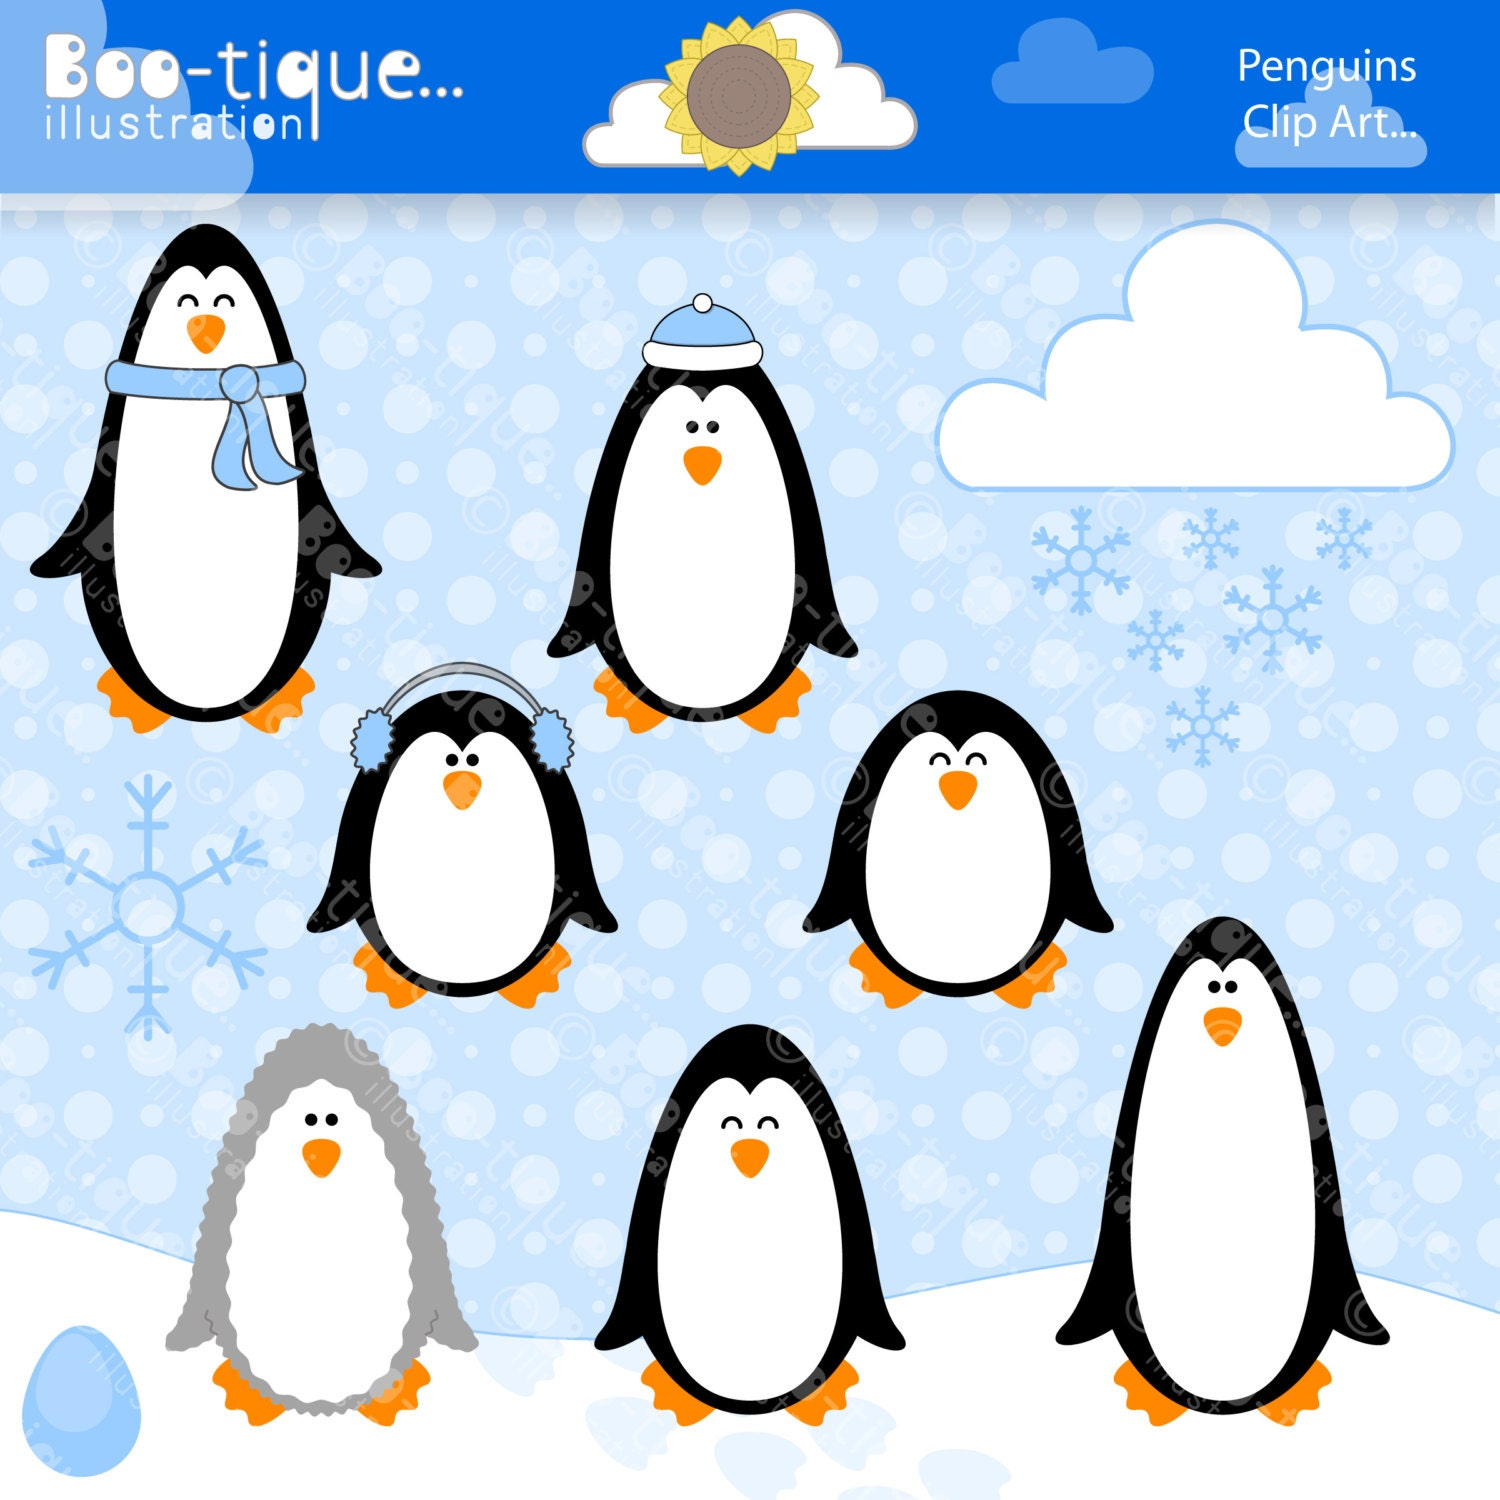 Christmas Clipart   Boo-tique Illustration Clipart